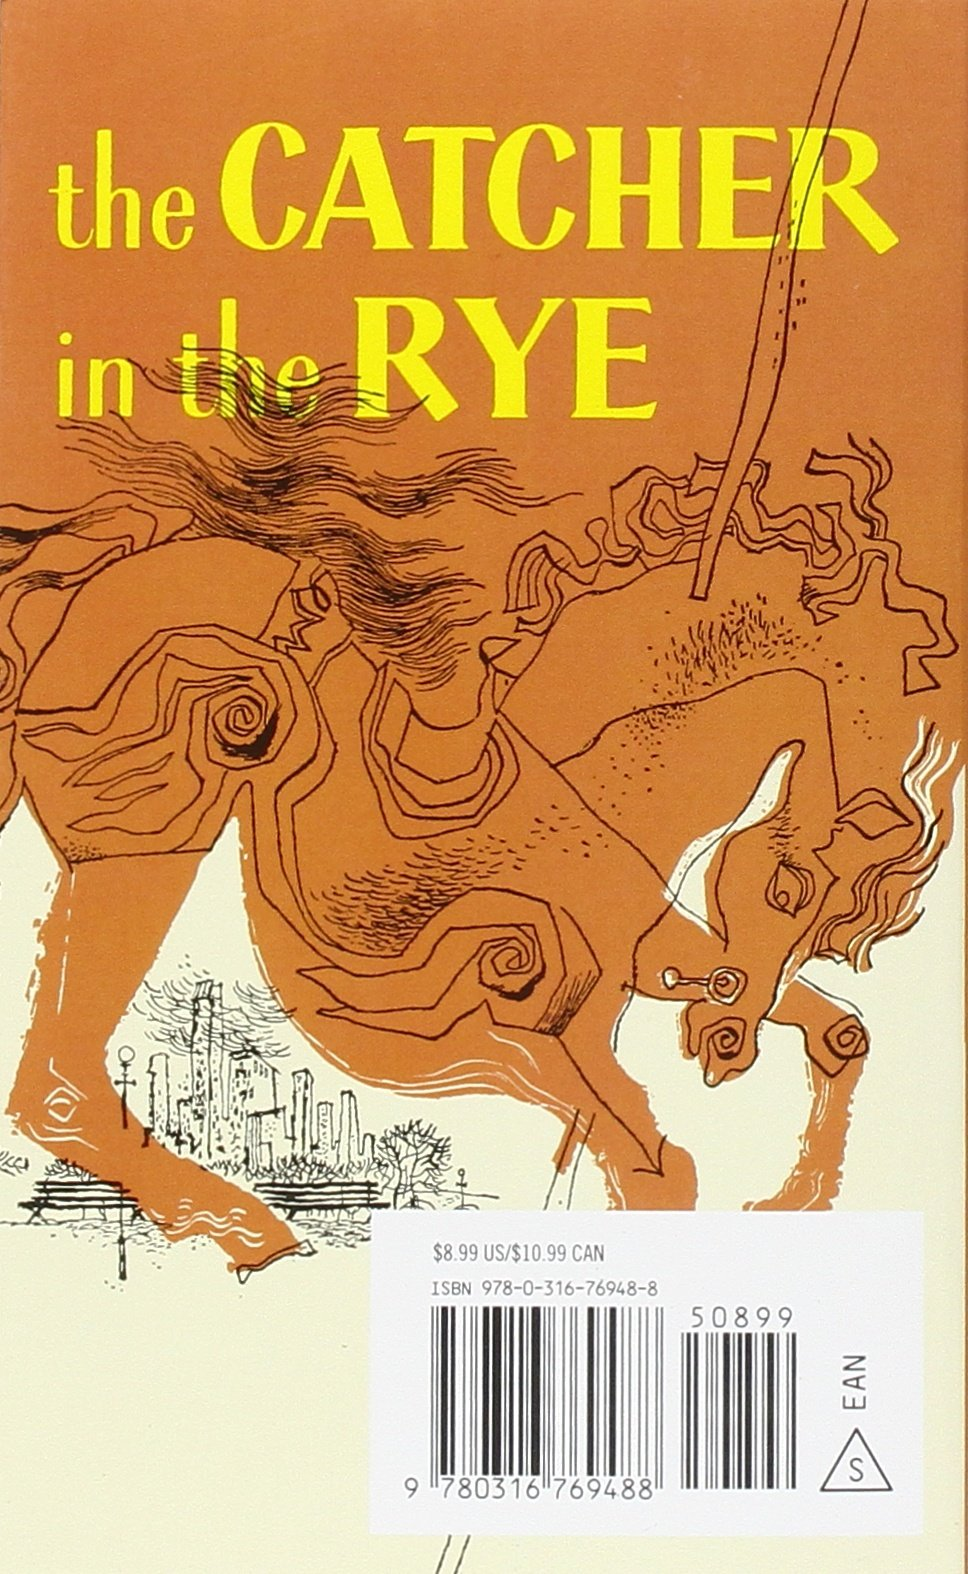 buy the catcher in the rye book online at low prices in buy the catcher in the rye book online at low prices in the catcher in the rye reviews ratings in